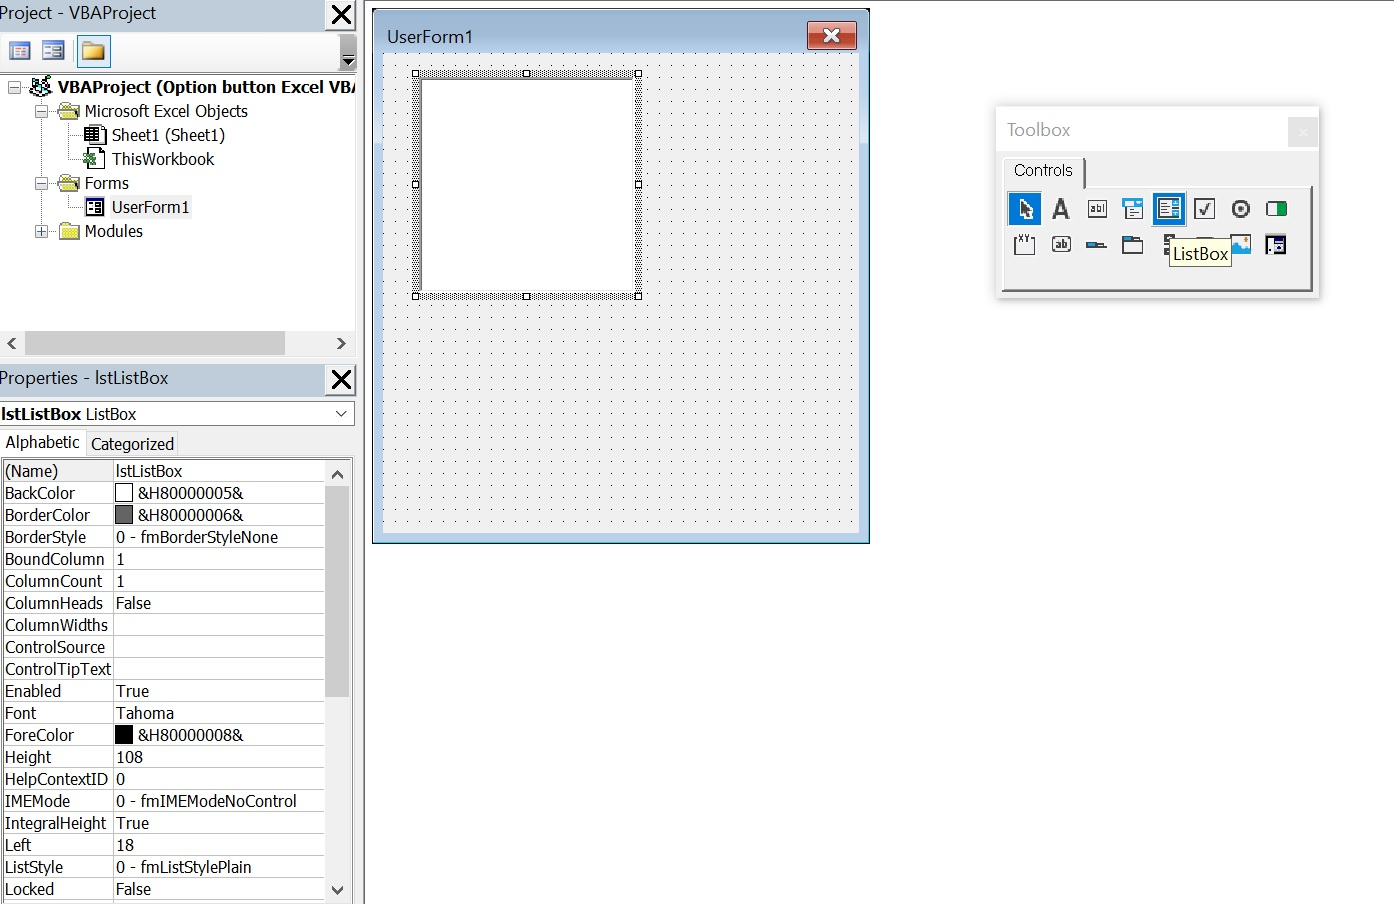 vba-insert-listbox-in-userform - Automate Excel